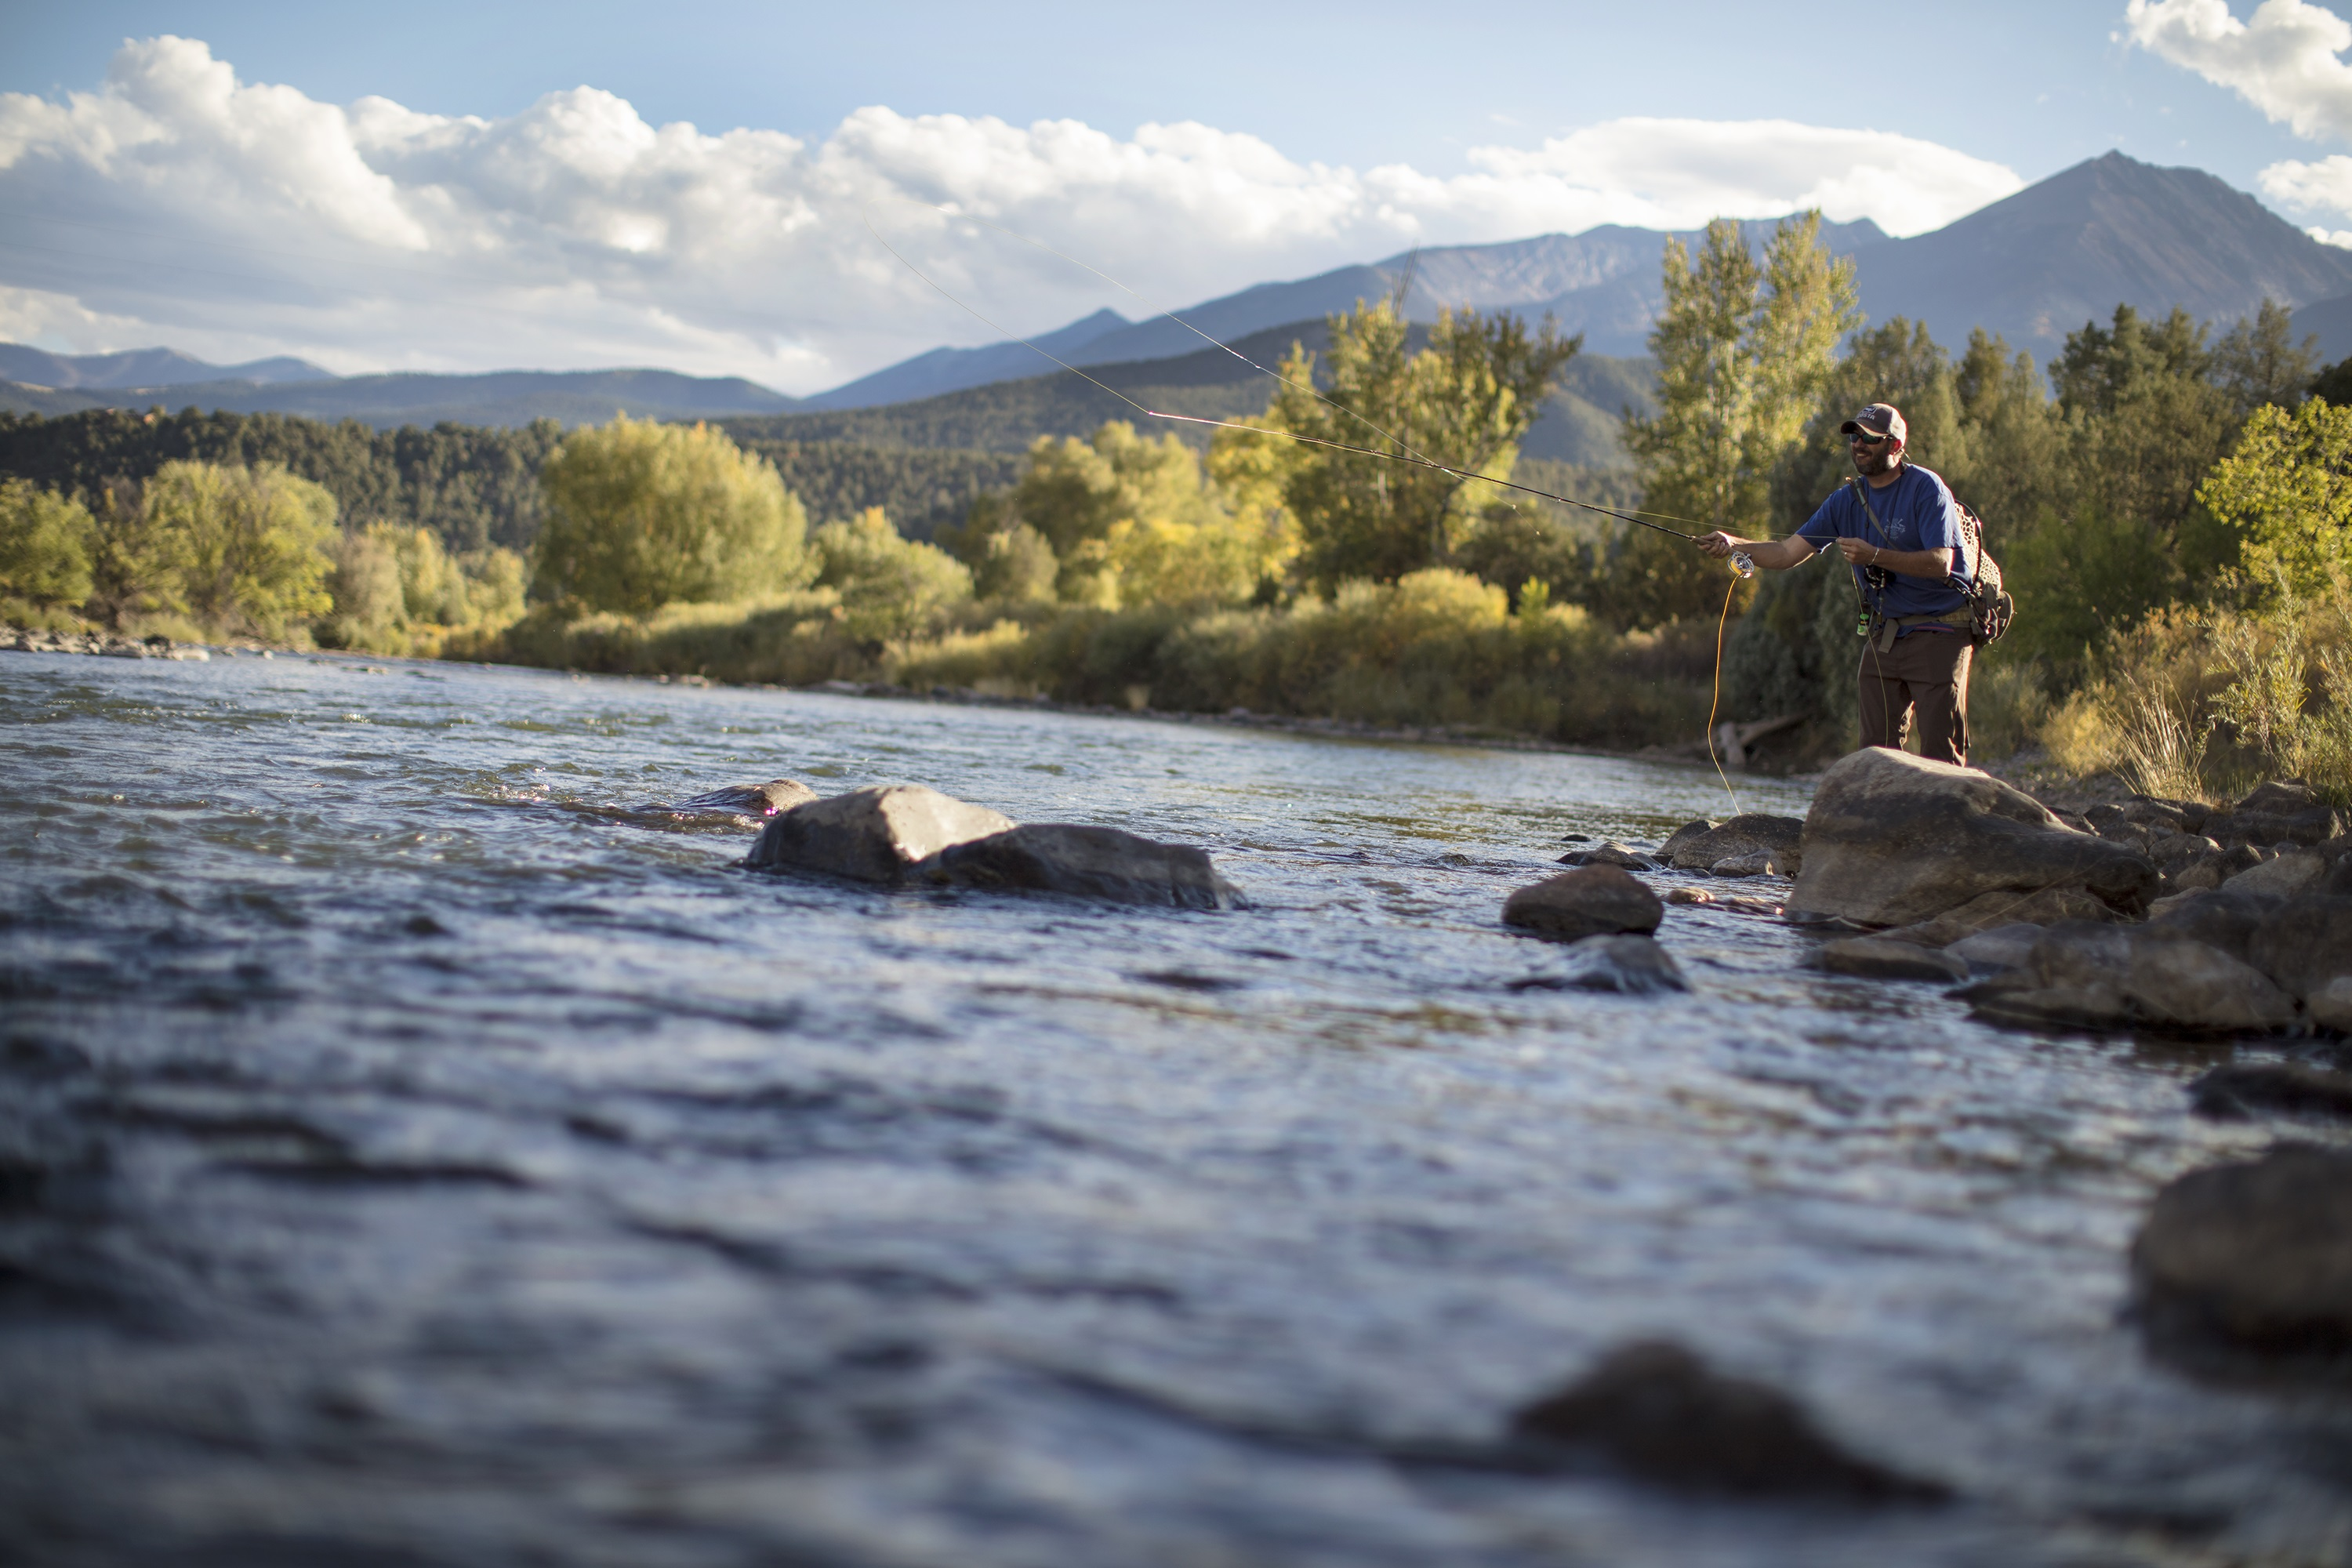 Fly Fishing on the Arkansas River